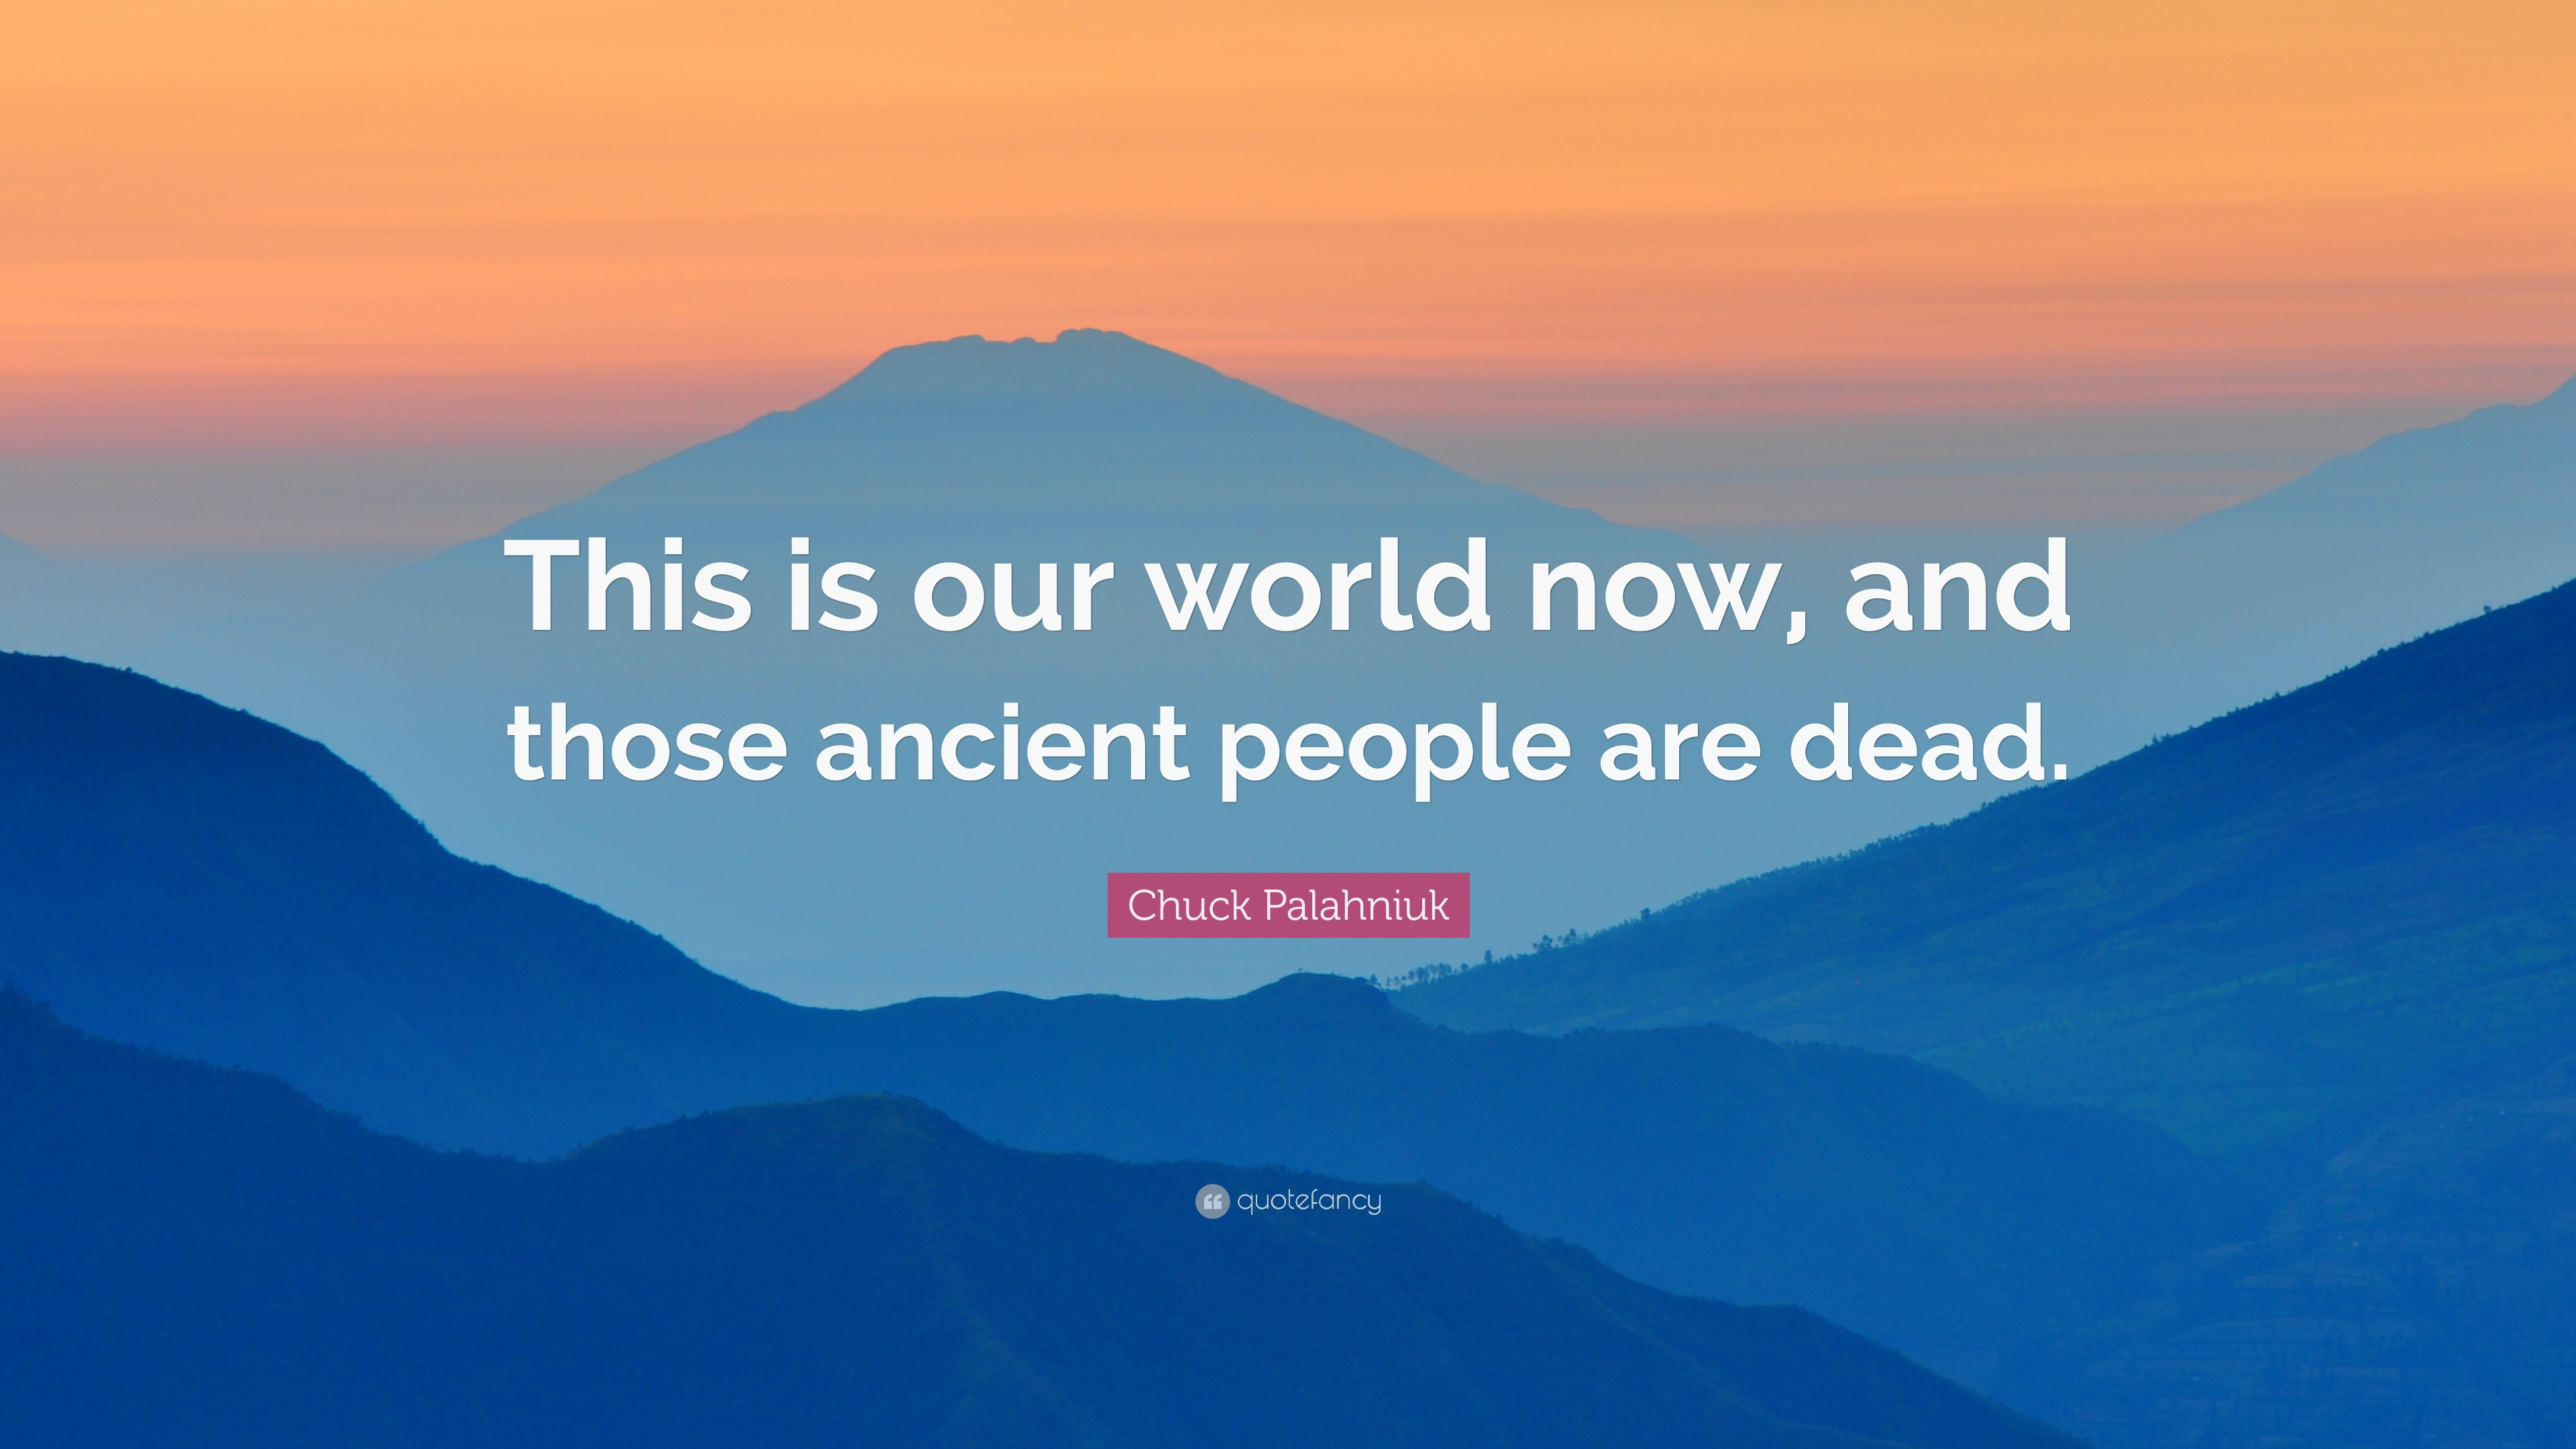 What would ancient people say about our world now?